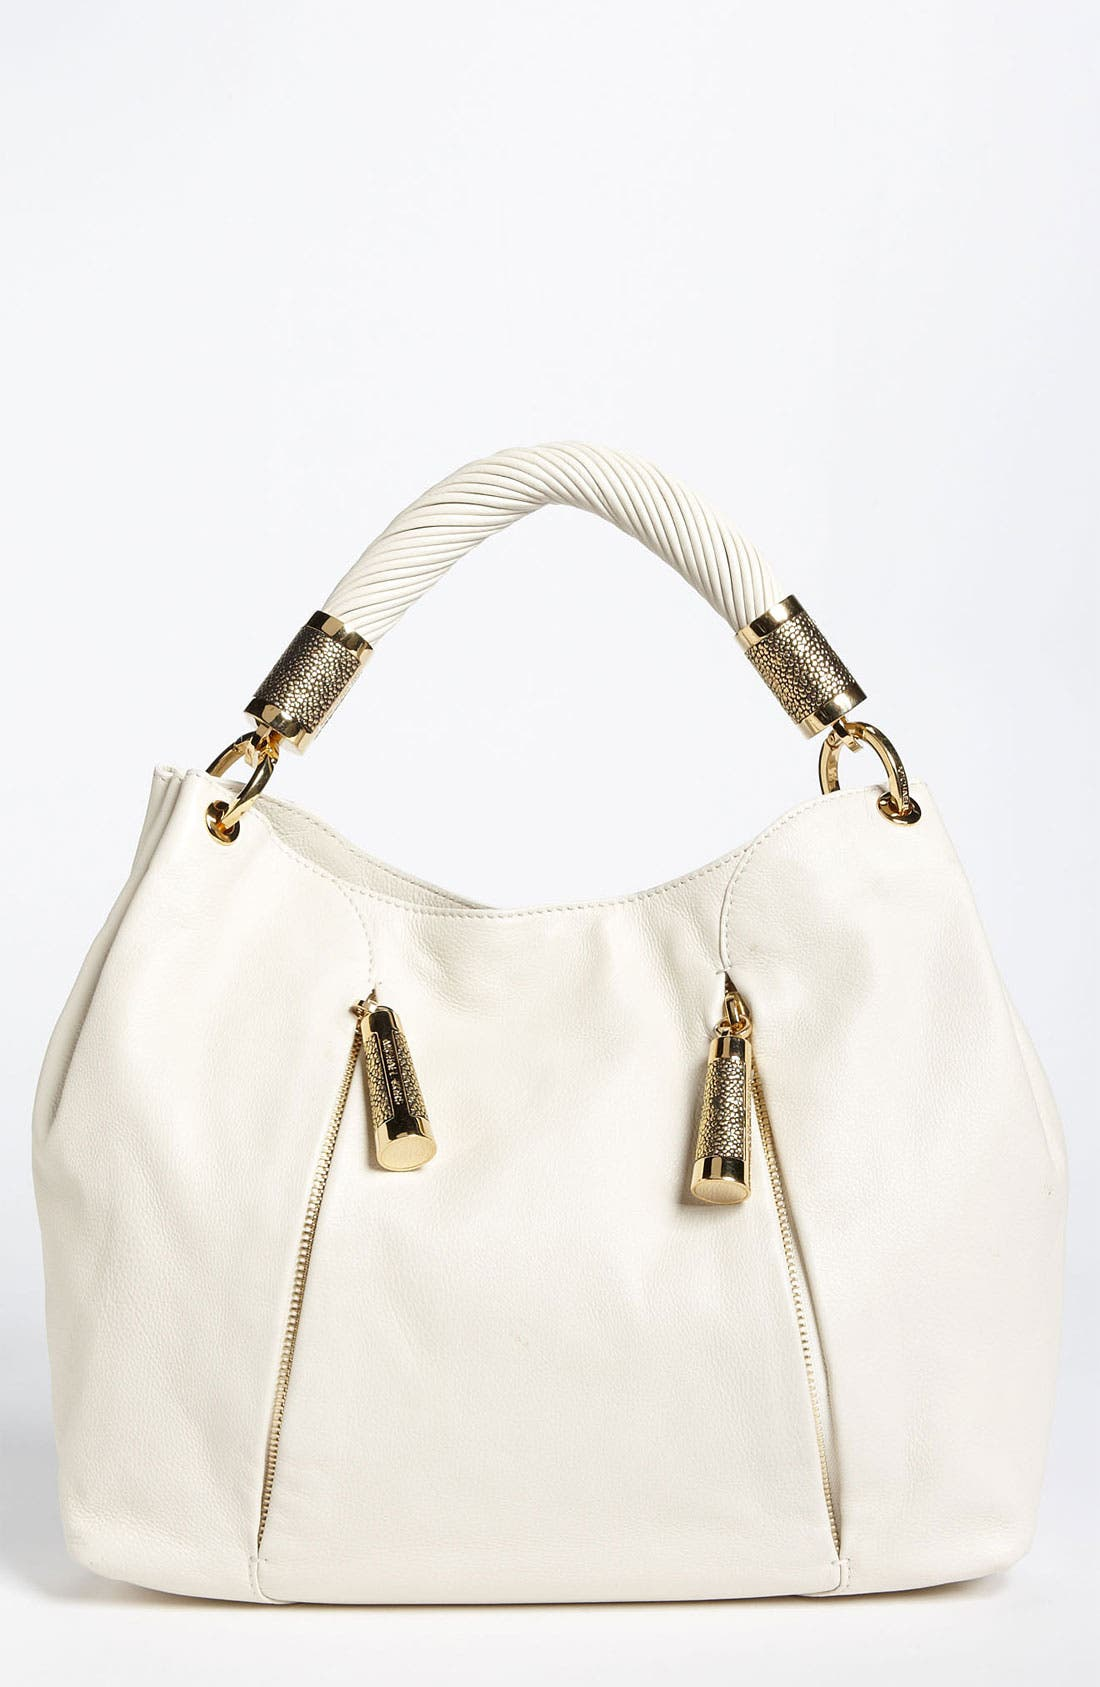 Alternate Image 1 Selected - Michael Kors 'Tonne' Leather Hobo